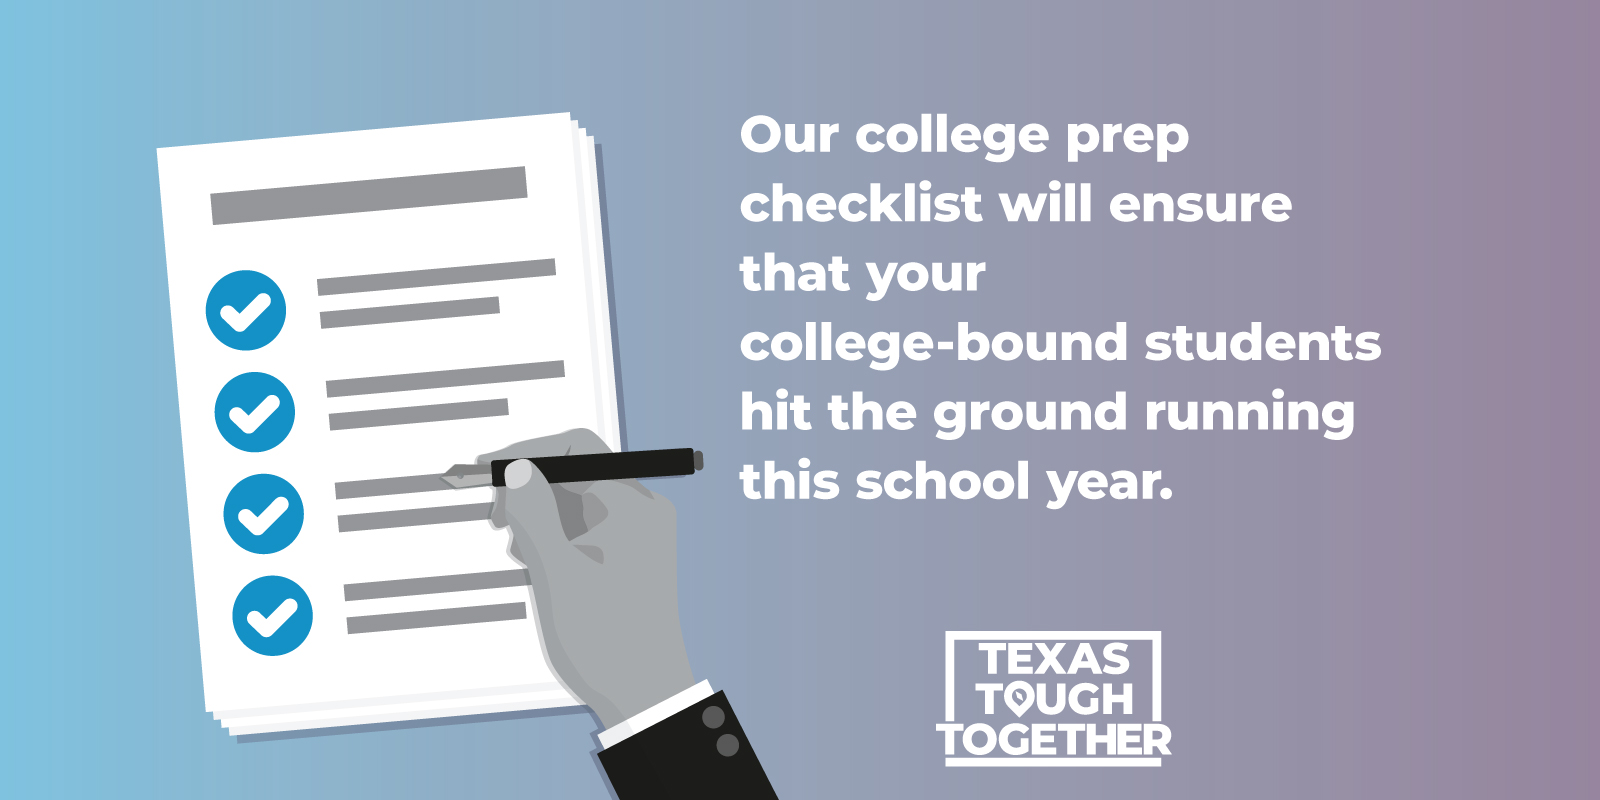 Our college prep checklist will ensure that your college-bound students hit the ground running this school year.